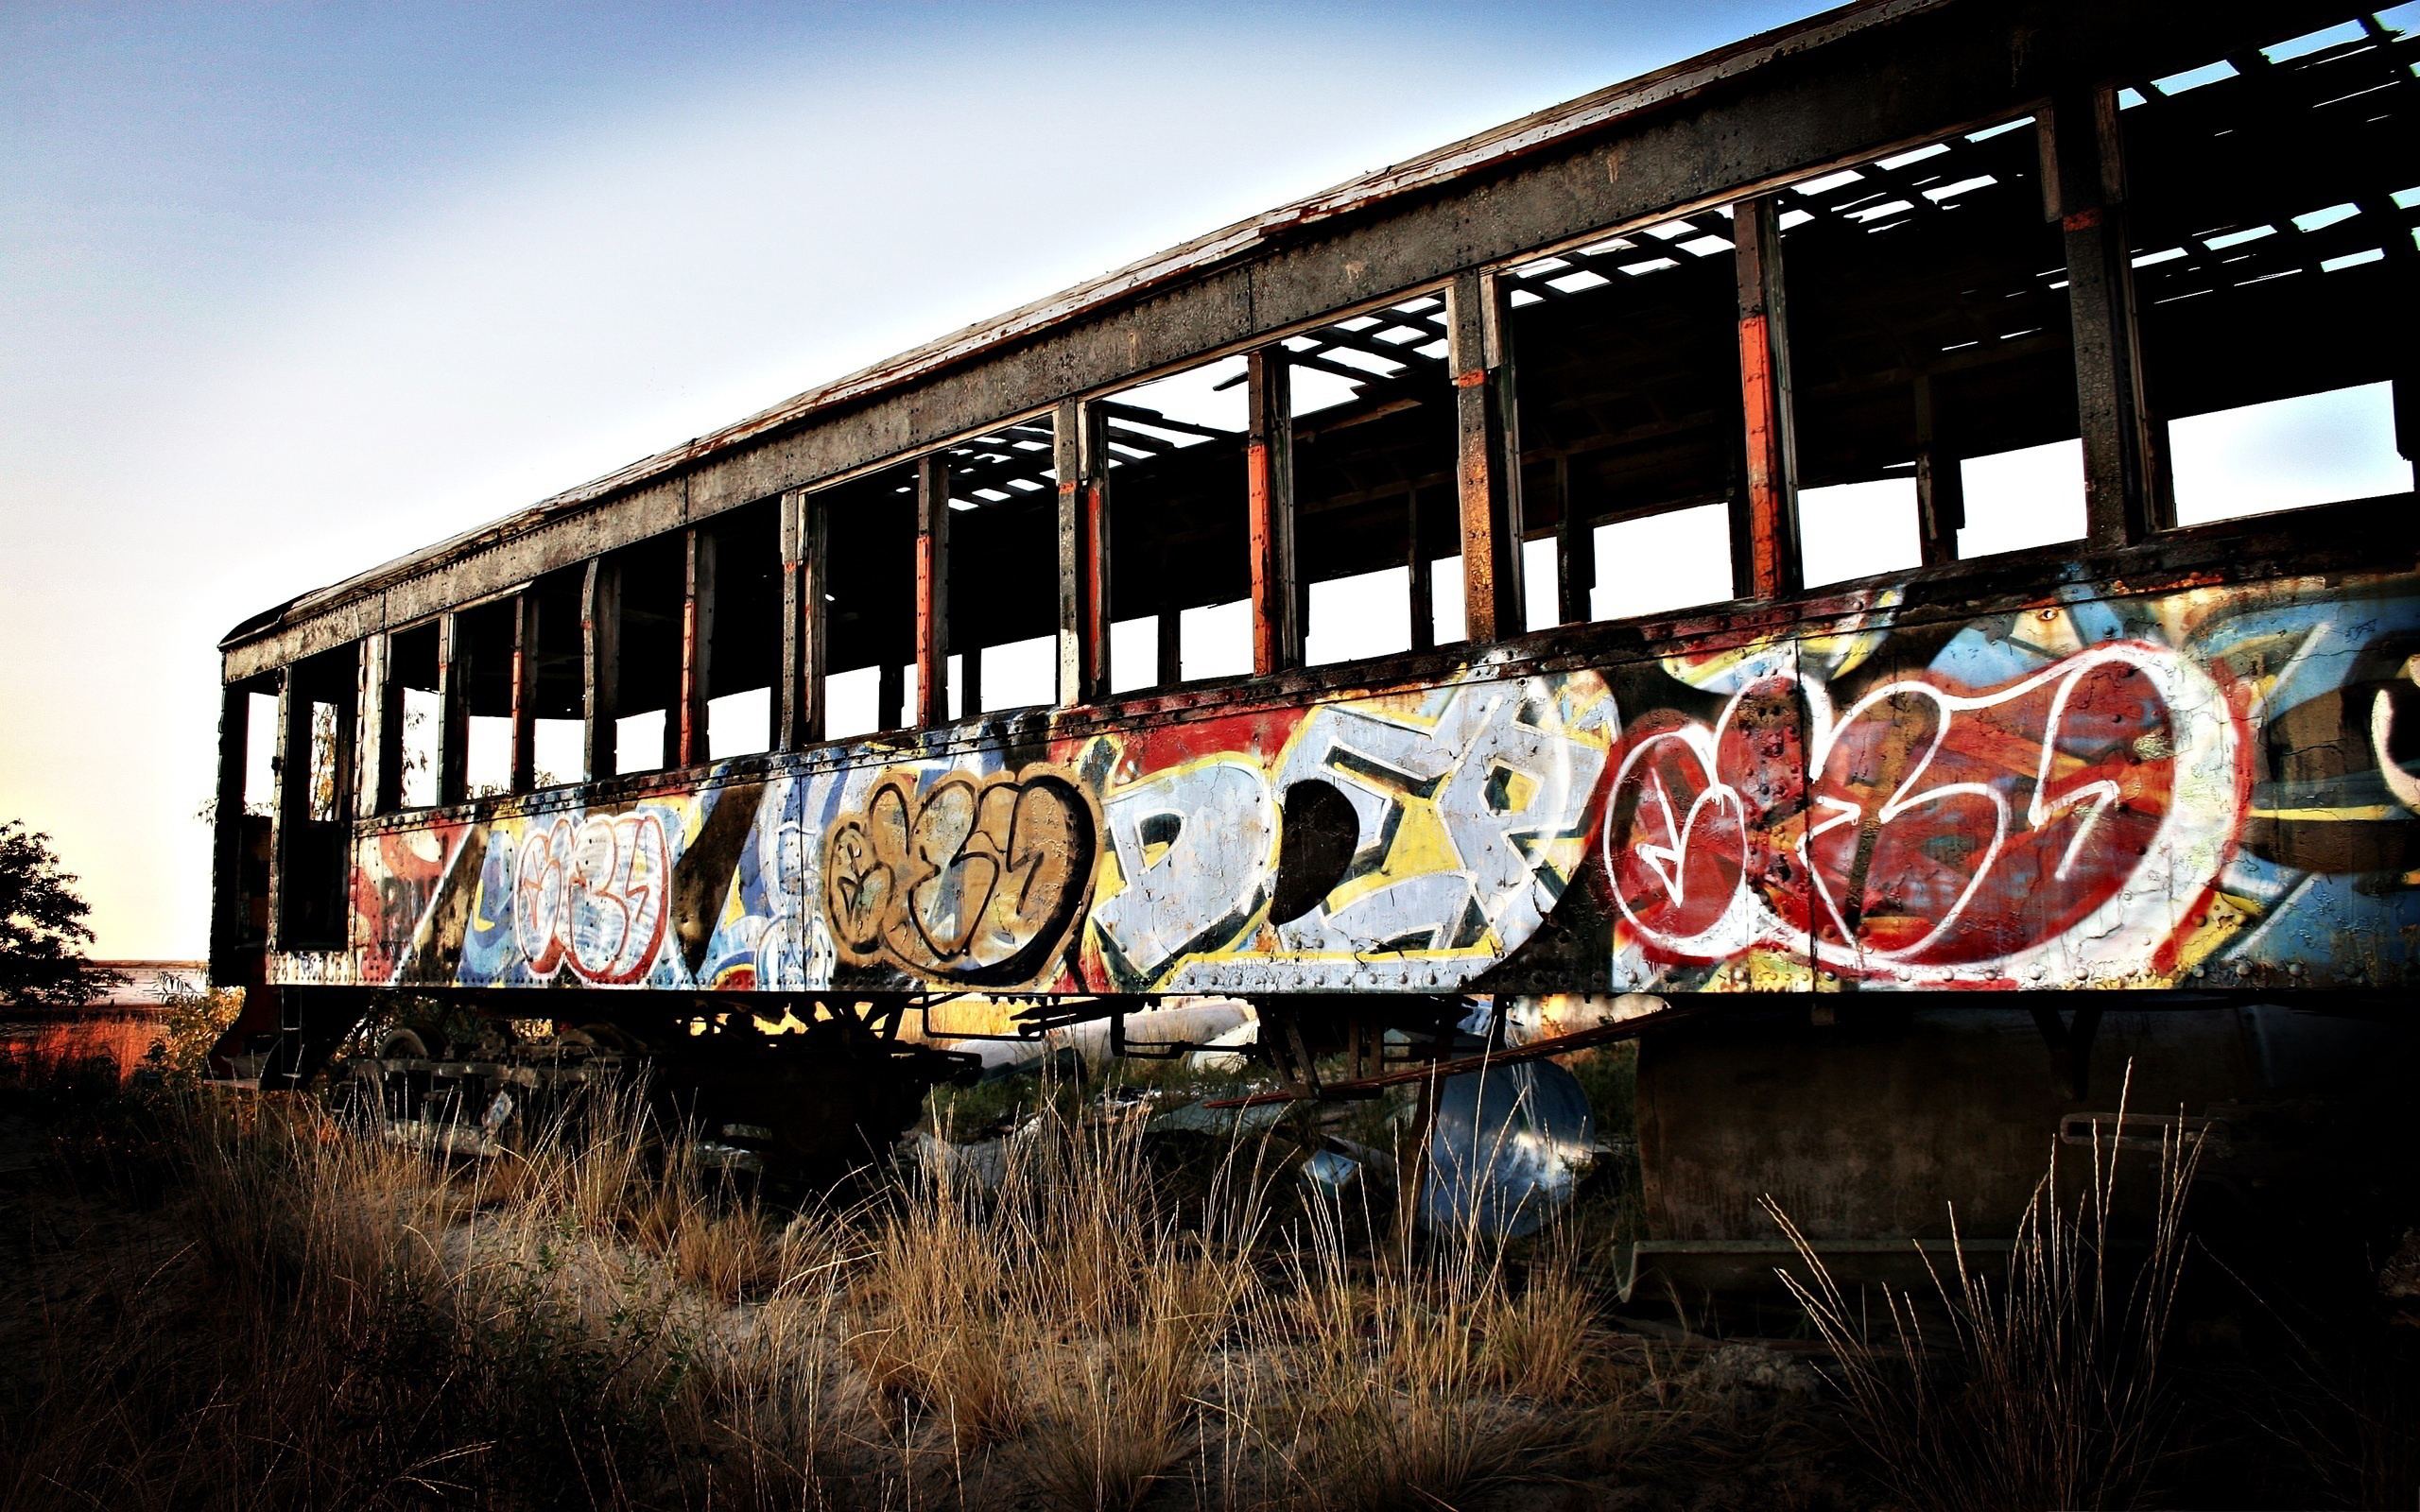 Train wagon graffiti